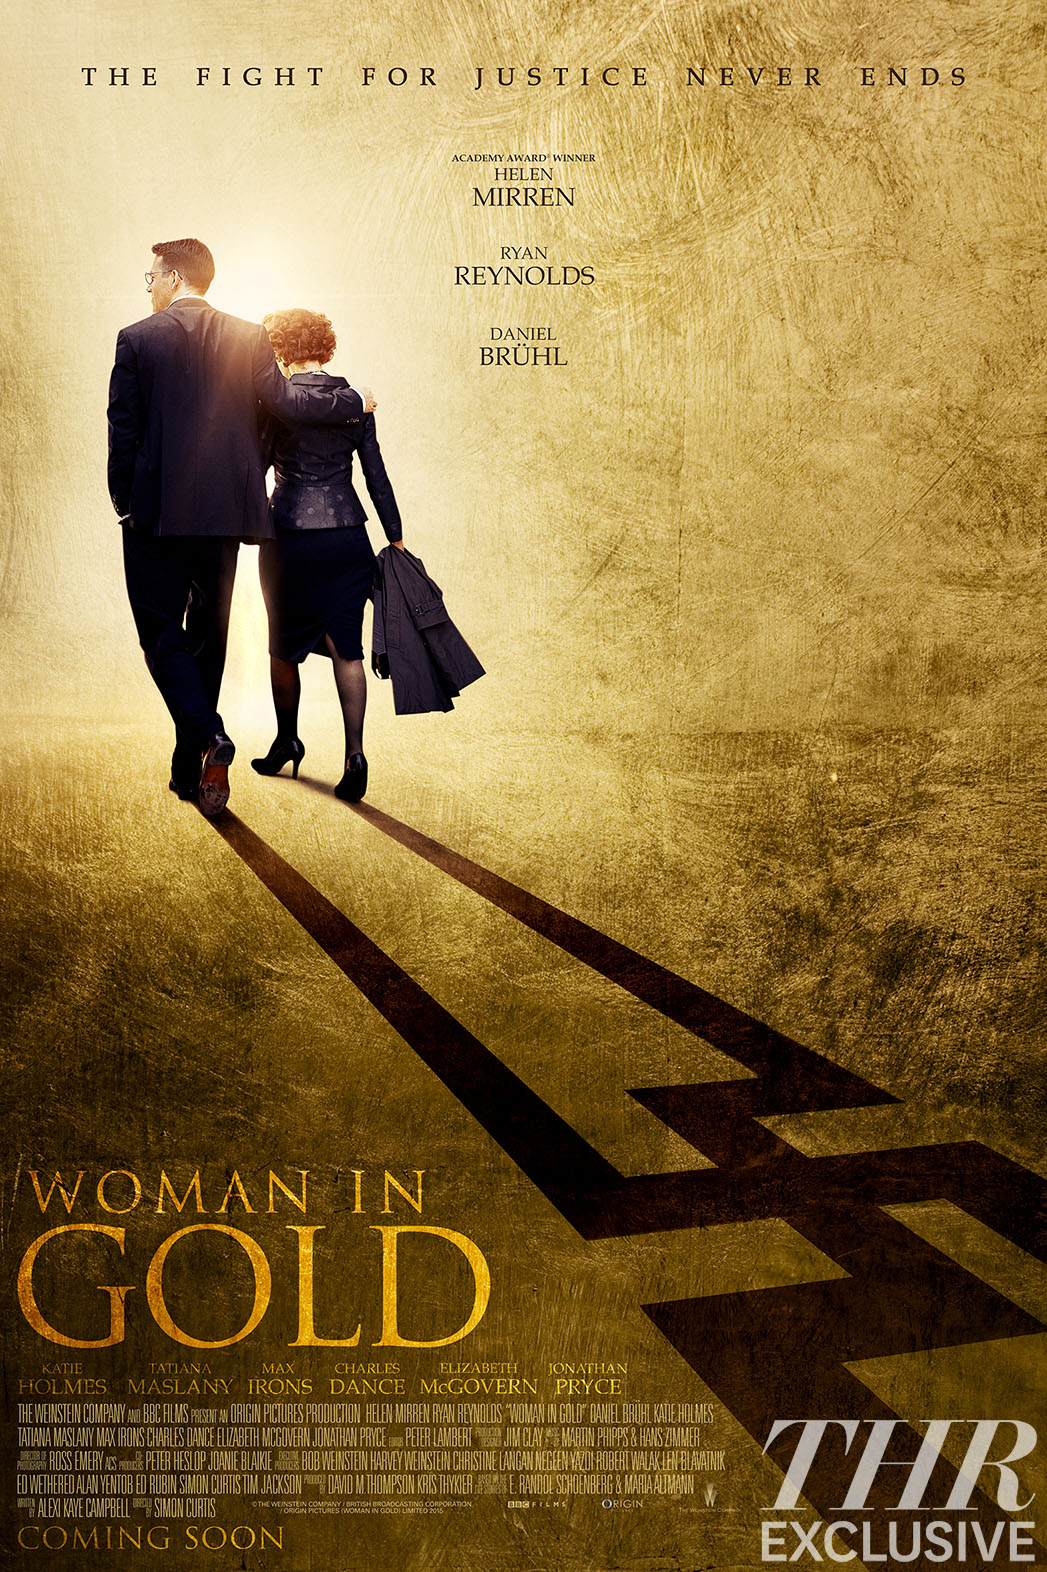 Woman in Gold Poster Exclusive - P 2014